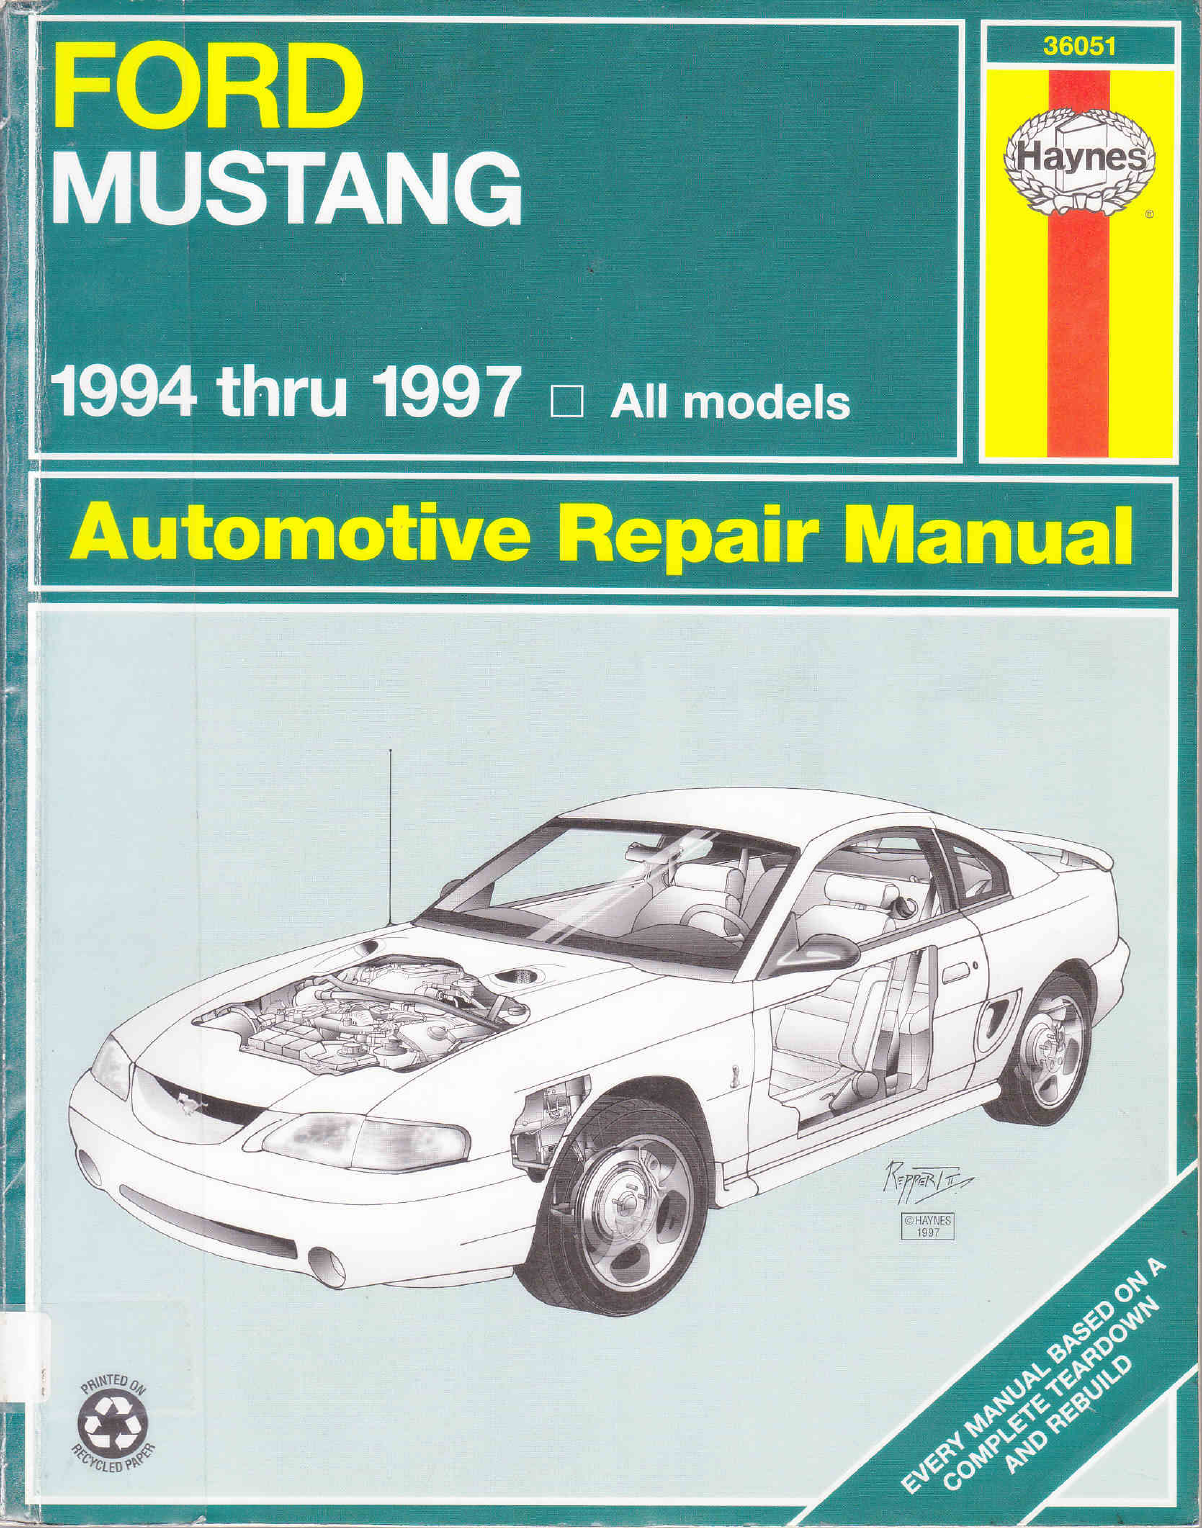 See our other Ford Mustang Manuals: